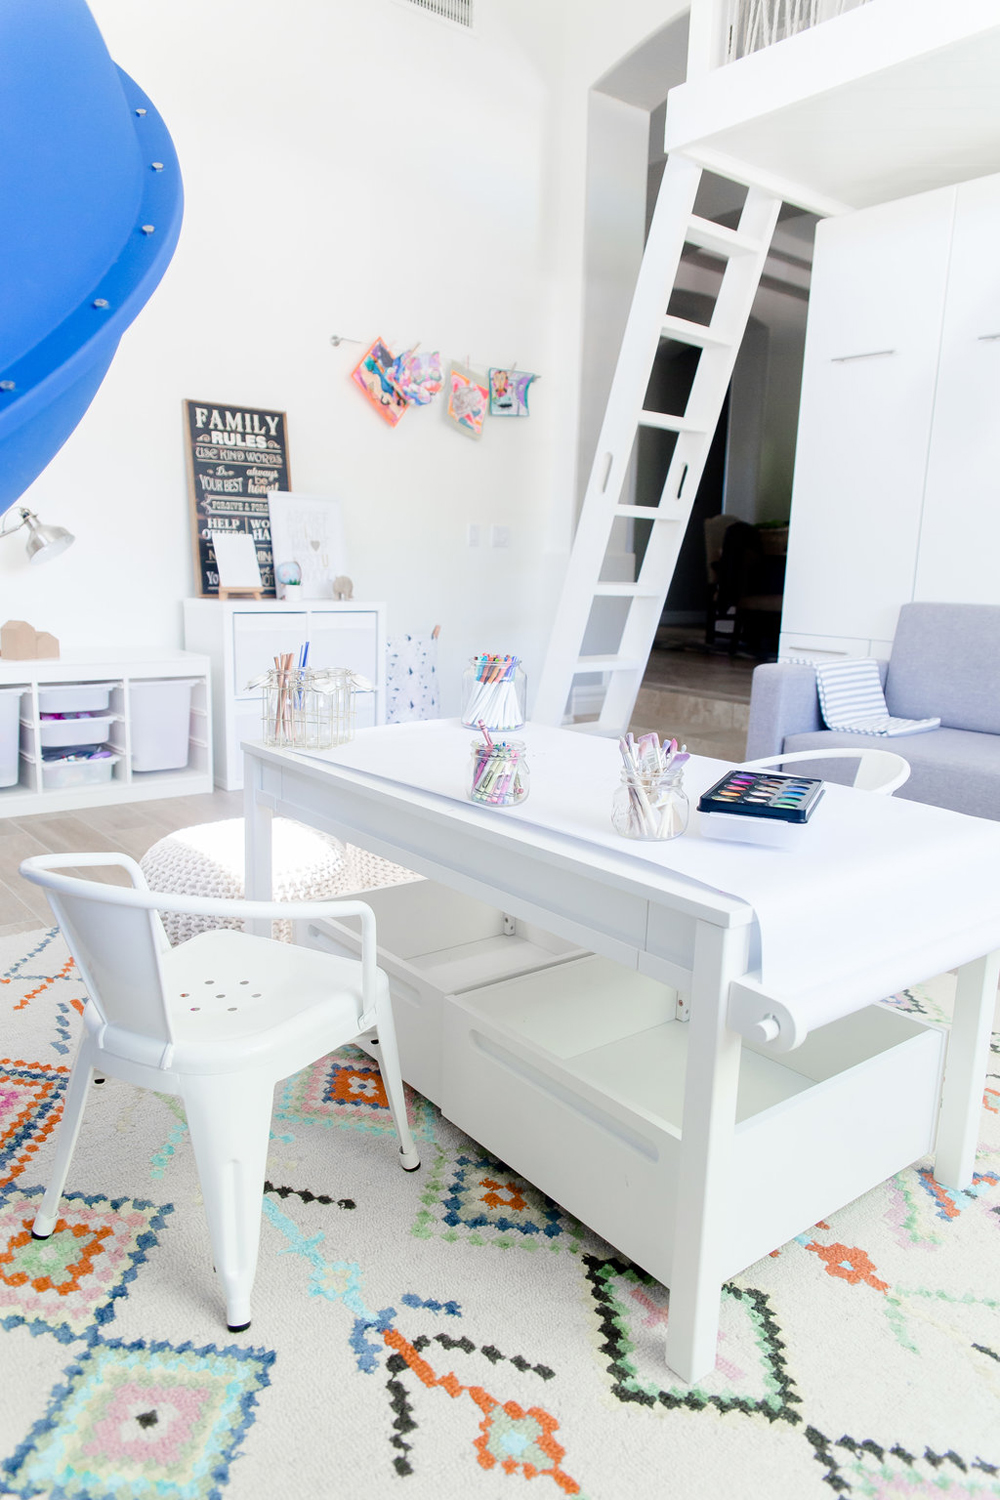 THE LifeStyled COMPANY - LCo Little Spaces